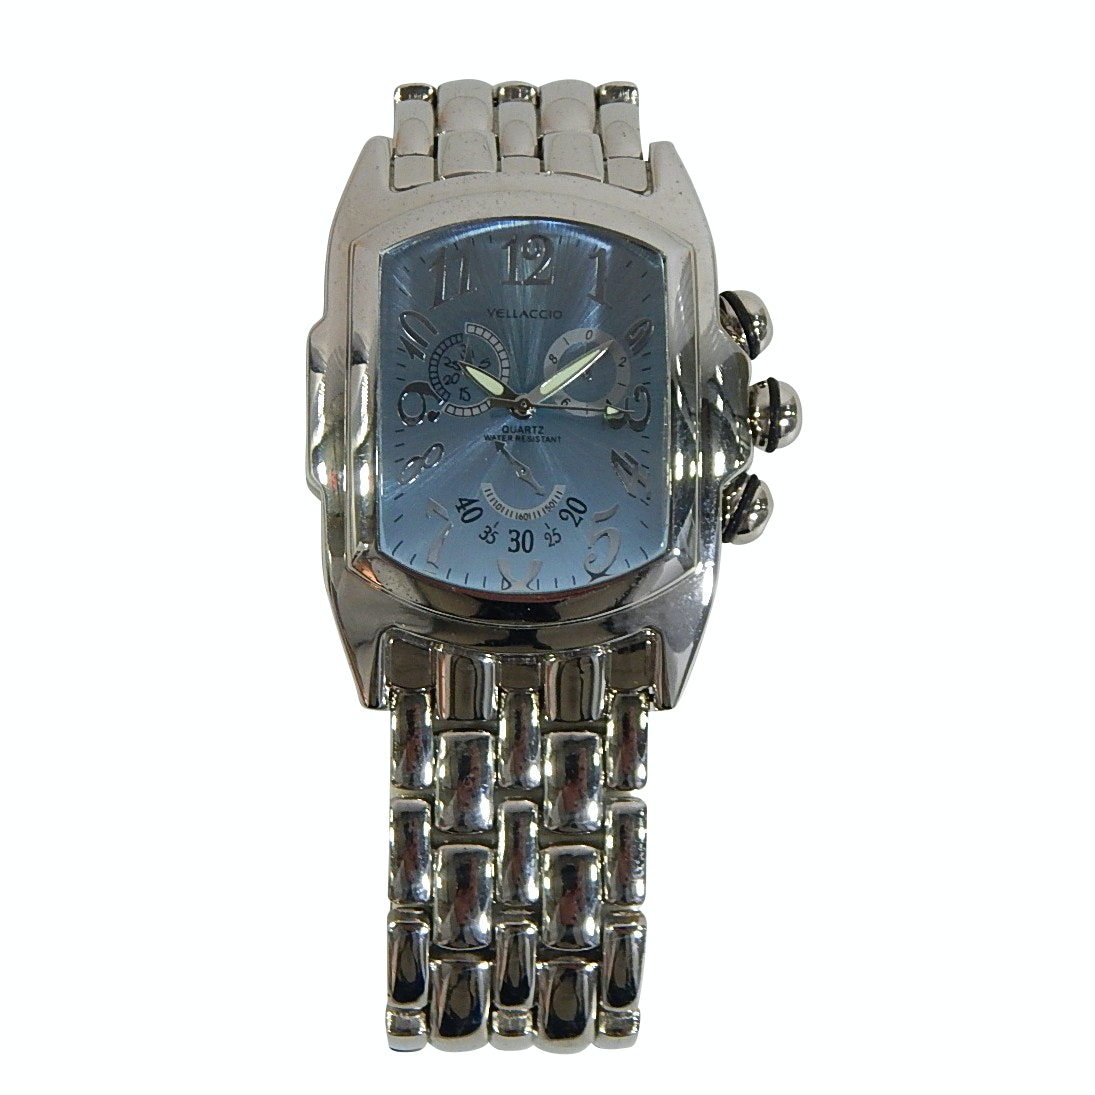 Vellaccio Quartz Stainless Steel Blue Face Wristwatch